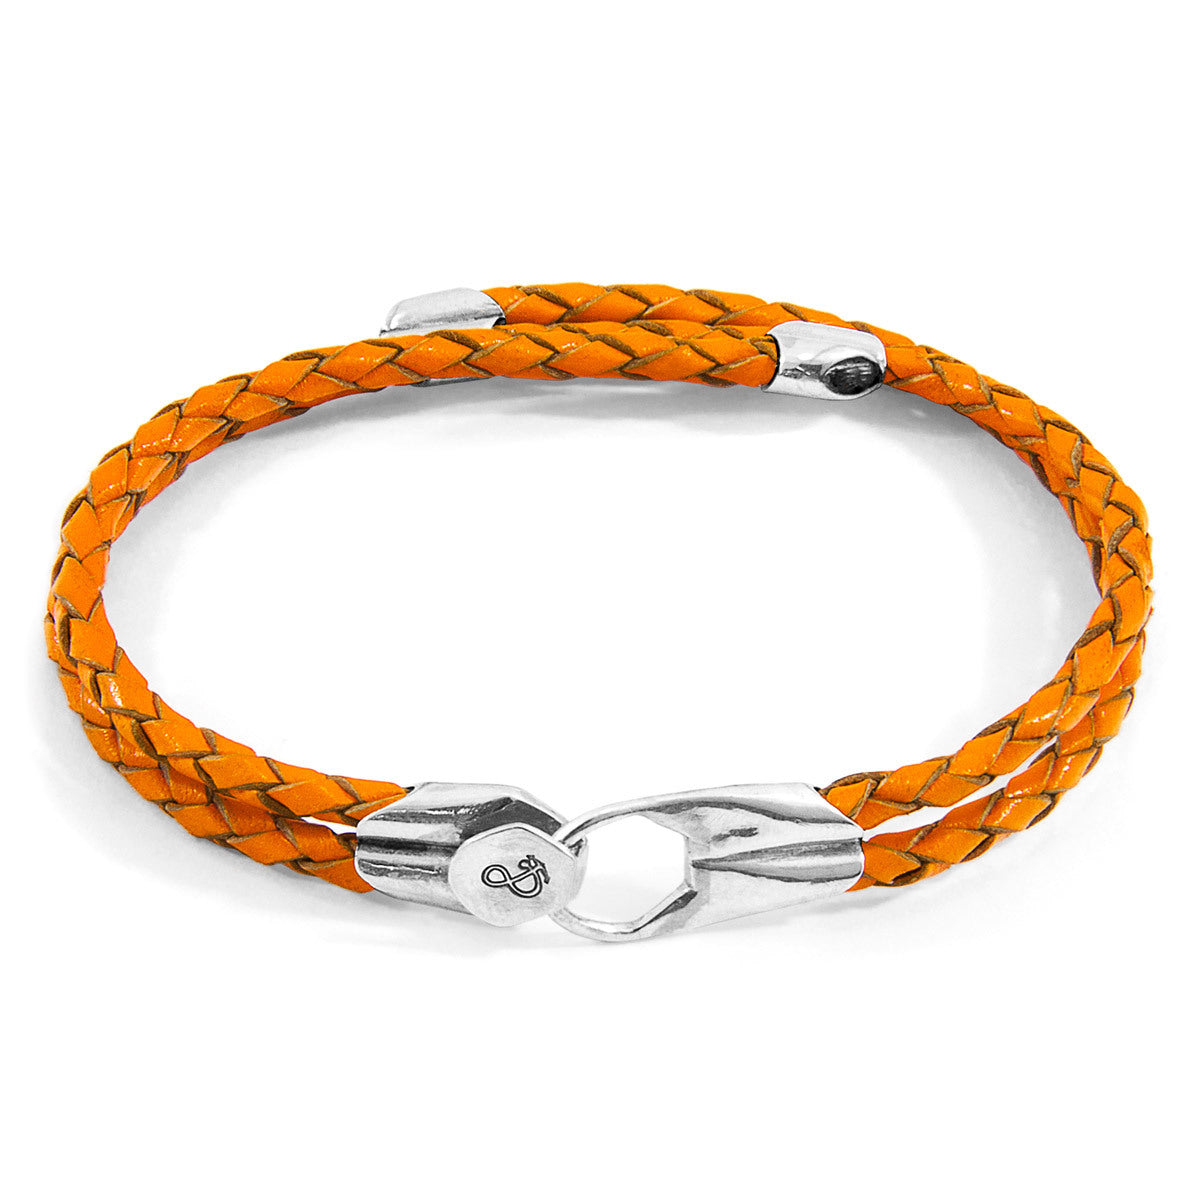 Jewely-Fire Orange Conway Silver & Leather Bracelet